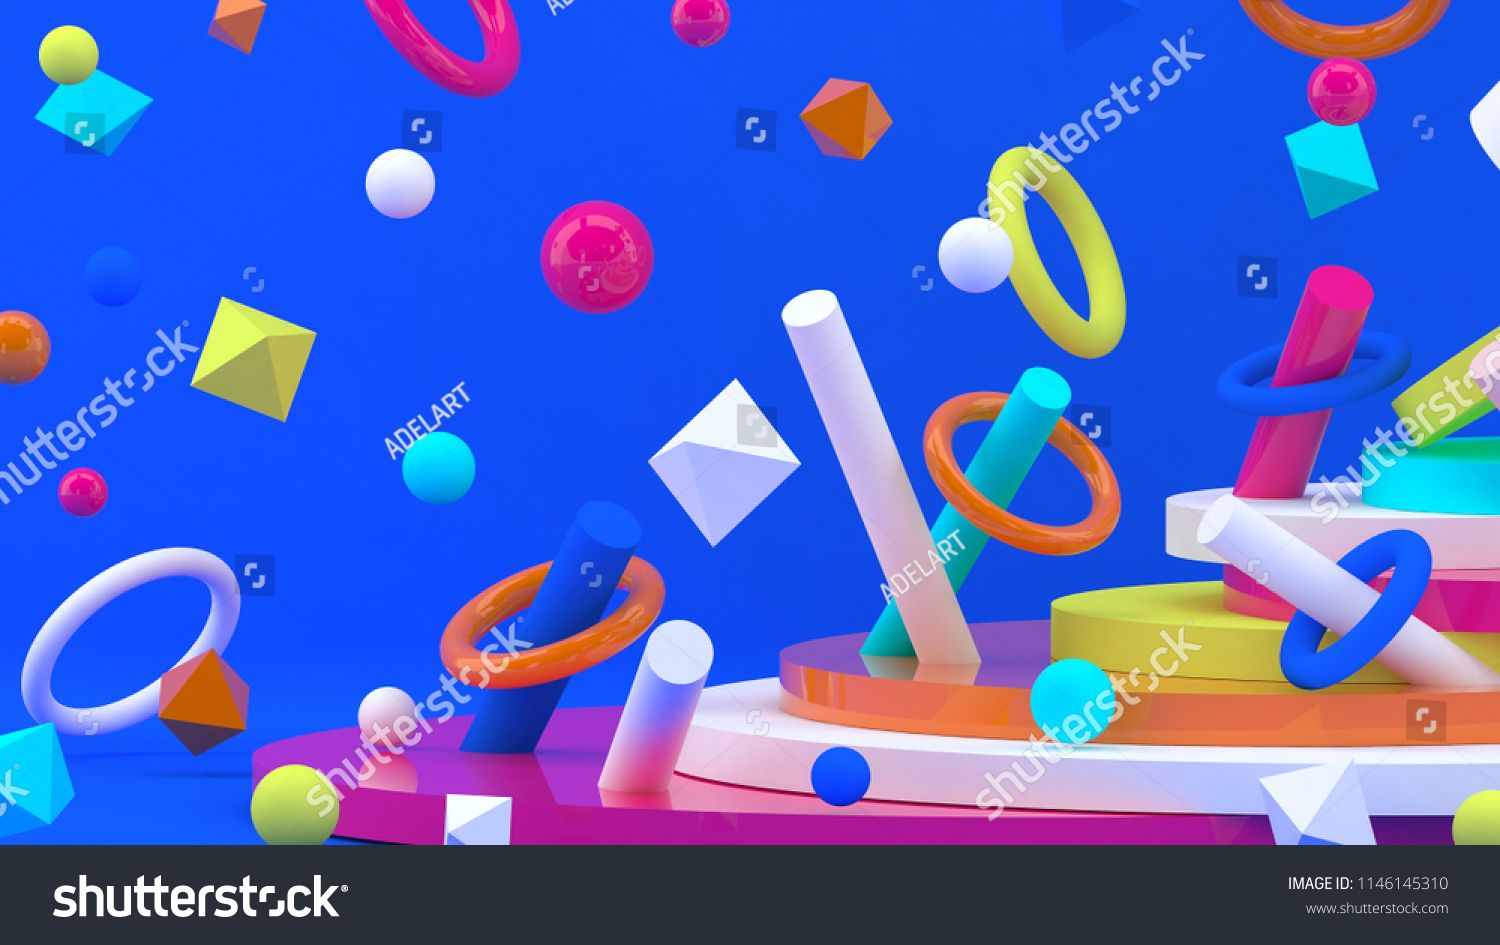 3d Background Abstract Wallpaper Flying Geometric Objects 3d Shapes Geometric Backdrop Trendy Moder Geometric Backdrop Abstract Wallpaper Modern Wallpaper